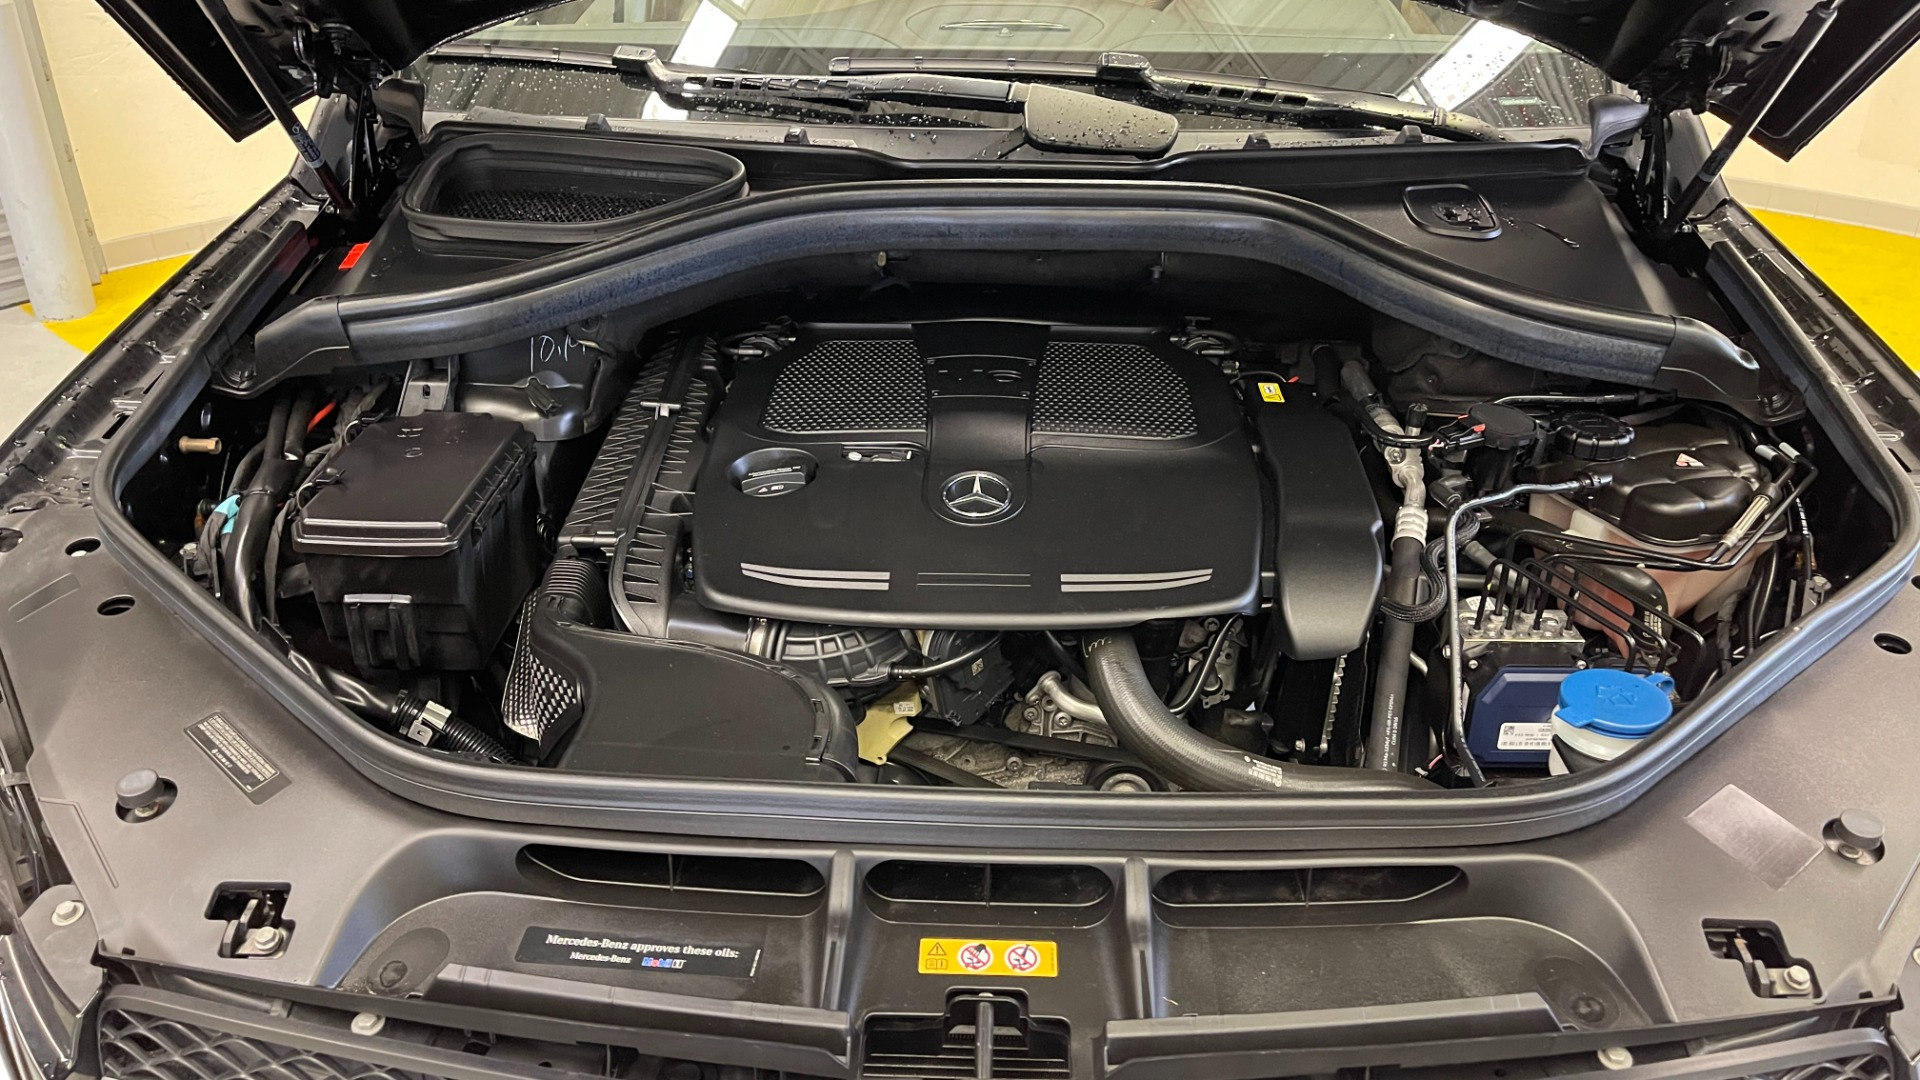 Used 2018 Mercedes-Benz GLE 350 4MATIC PREMIUM / NAV / PARK PILOT / BSA / H/K SND / SURROUND VIEW for sale $40,995 at Formula Imports in Charlotte NC 28227 16